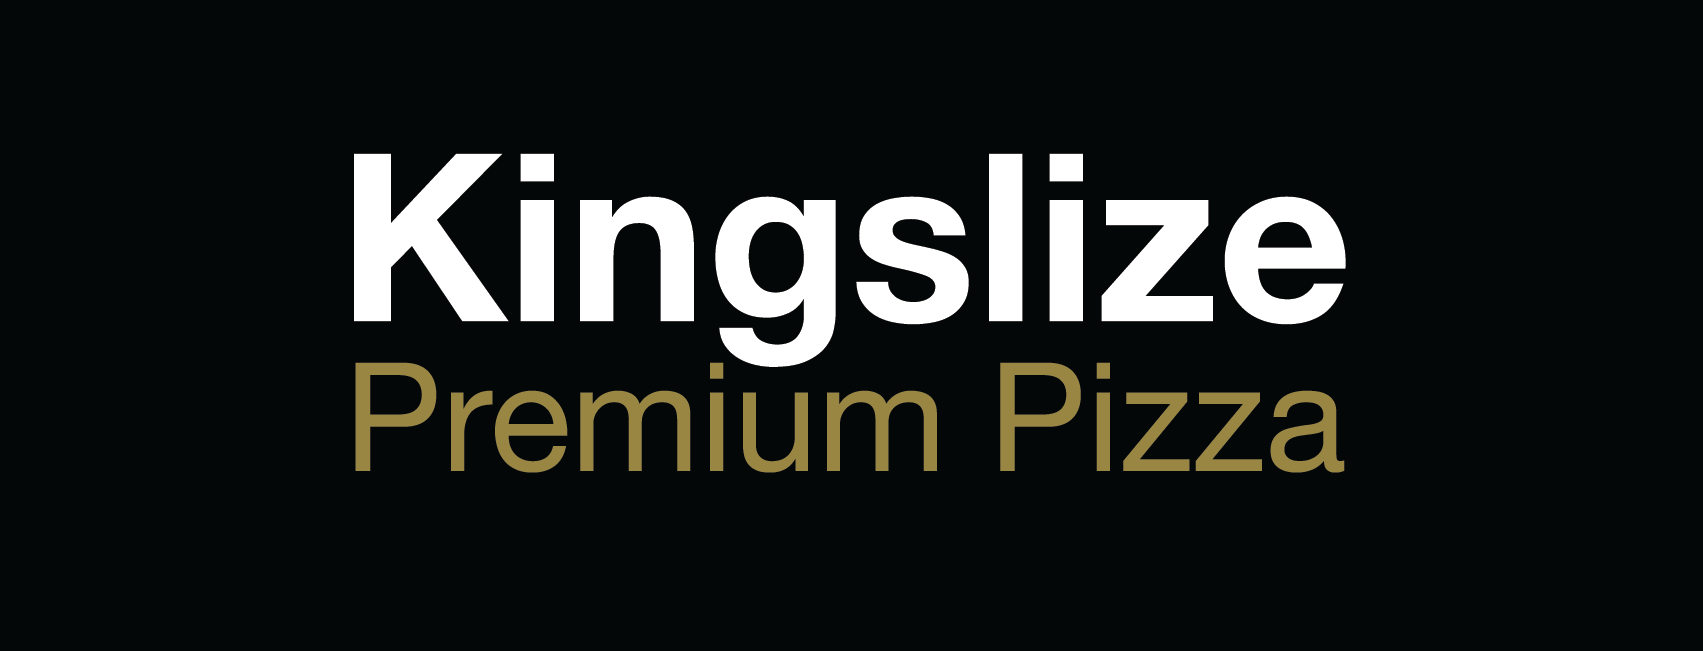 Kingslize pizza